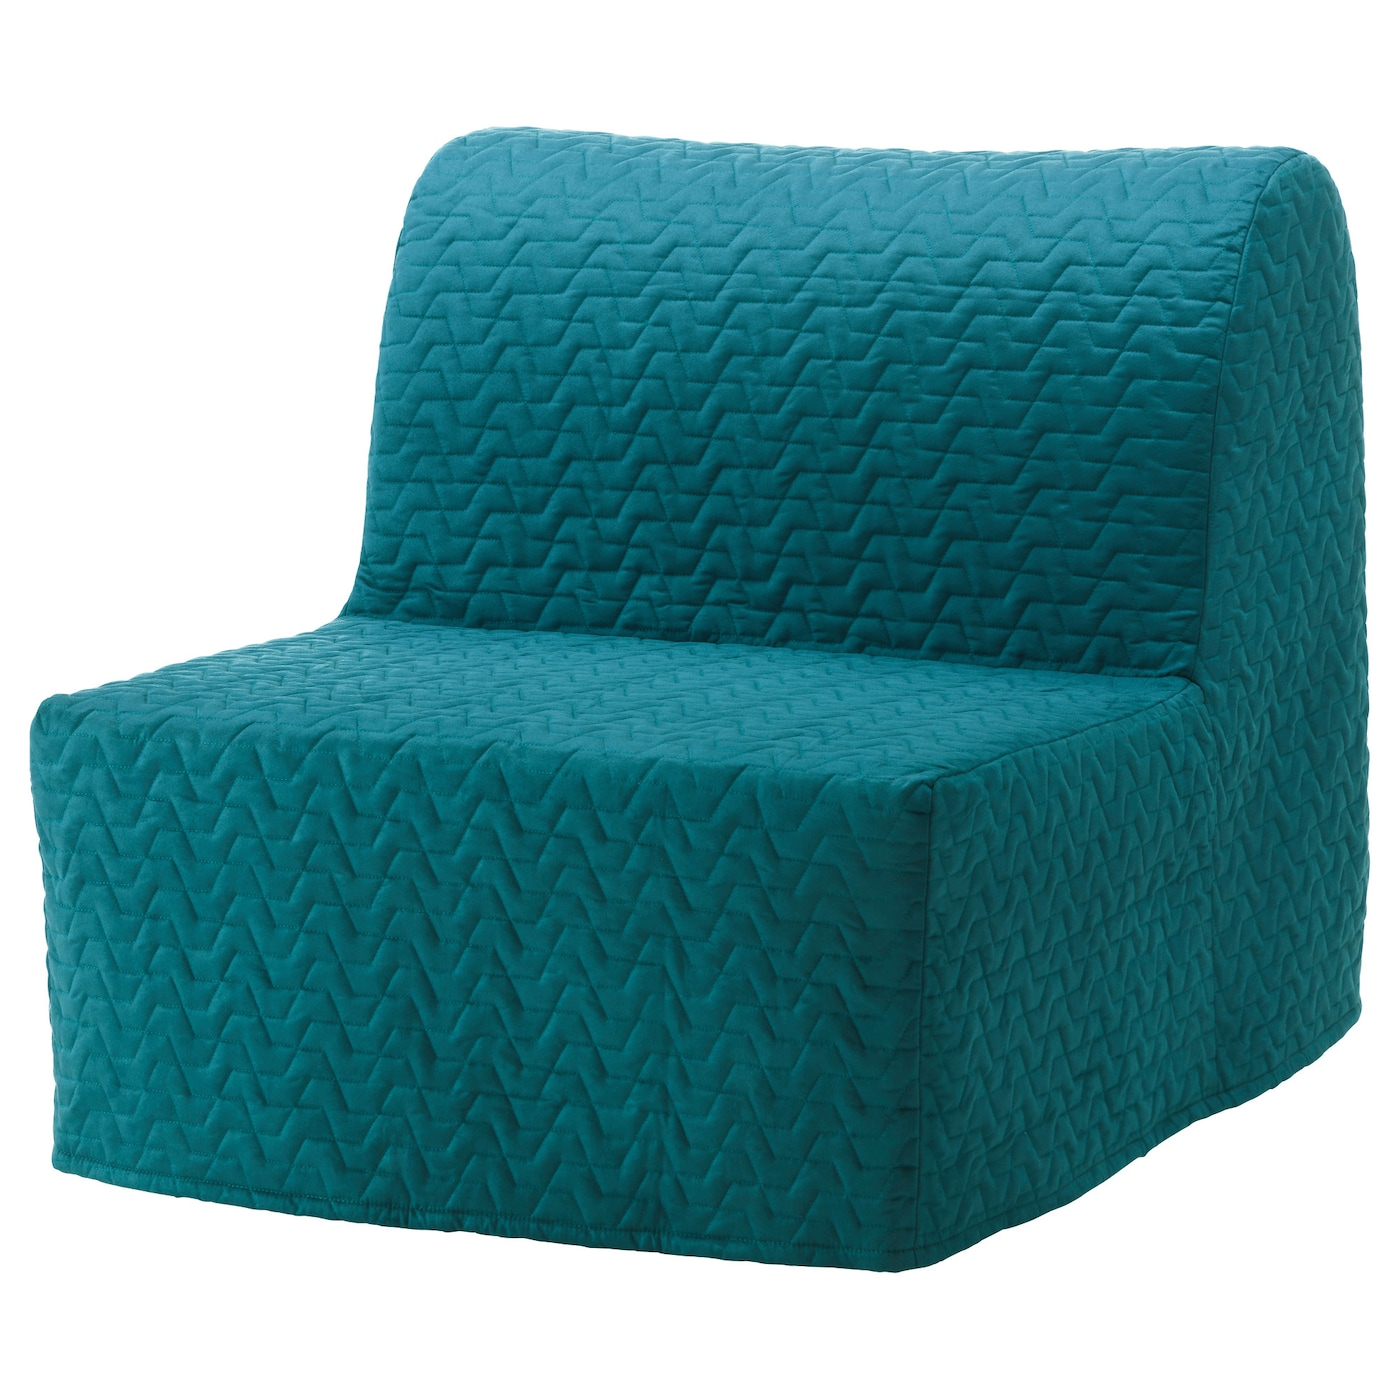 Lycksele l v s chair bed vallarum turquoise ikea - Ikea ps poltrona letto ...